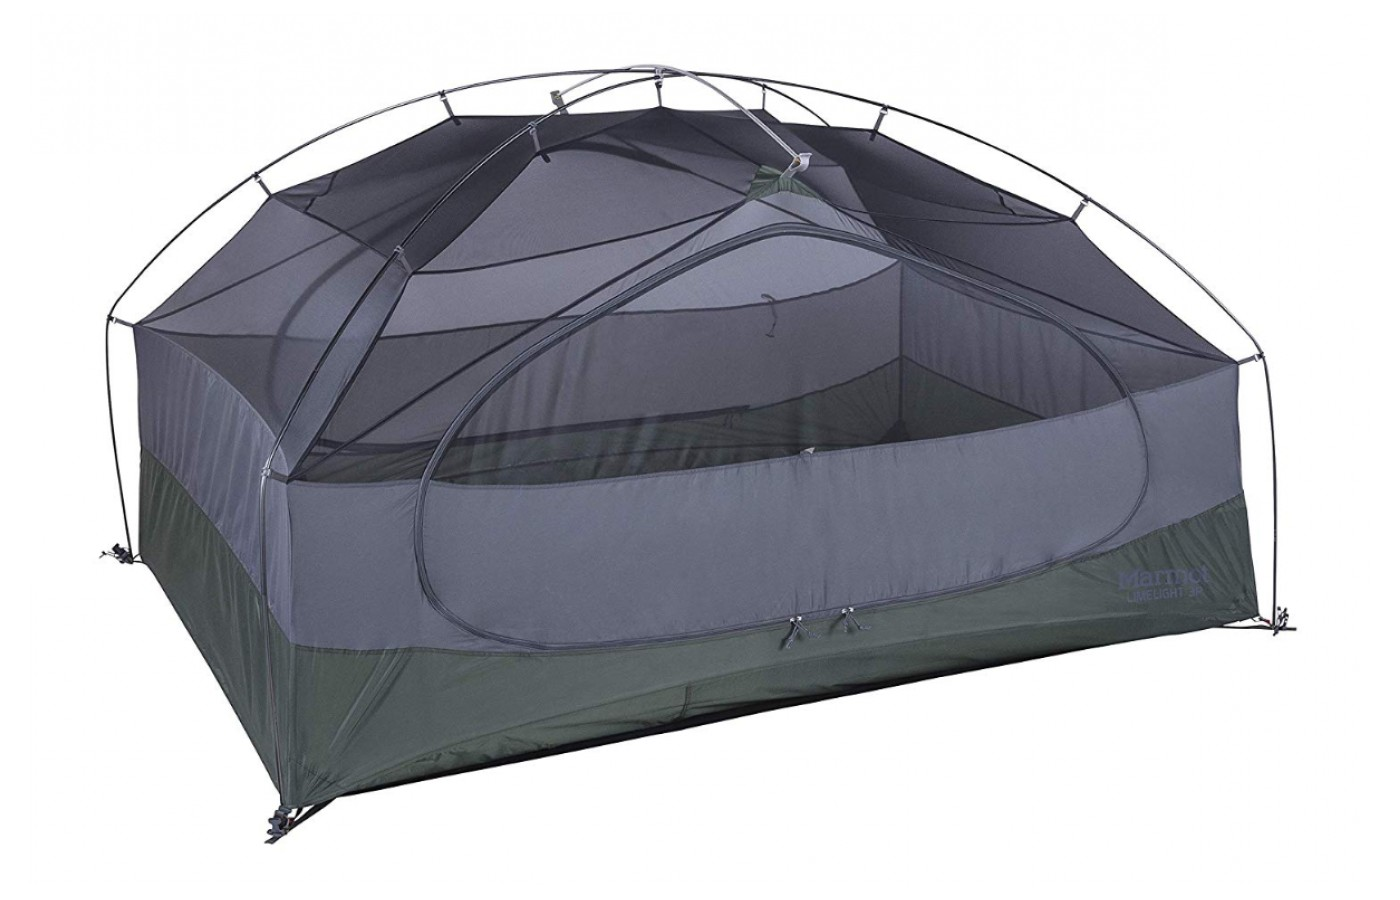 This tent offers a lot of ventilation and a unique rectangular designed bottom.